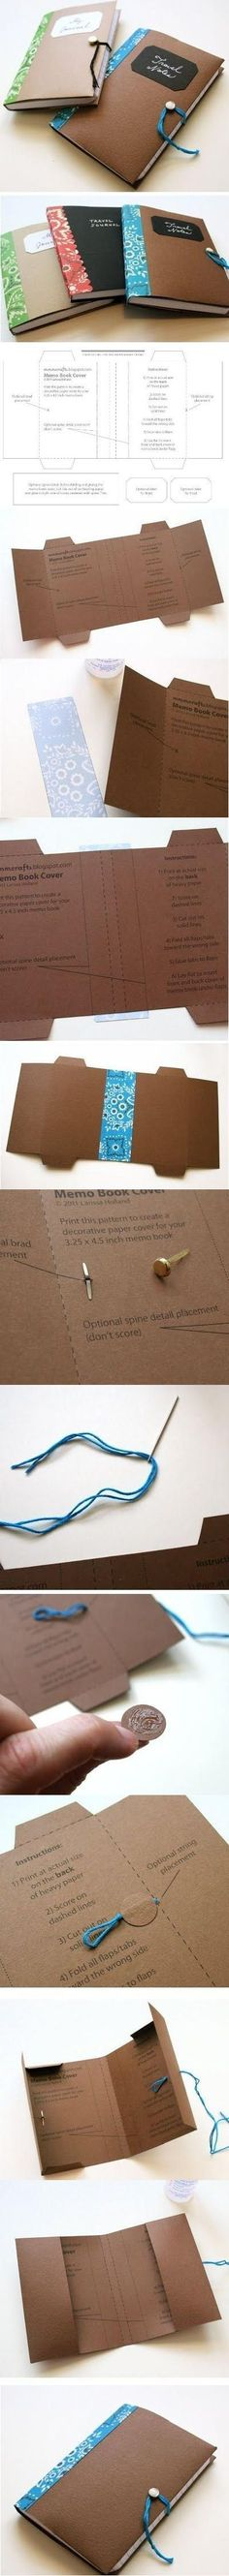 Free Printable Template For A Handmade/Decorated Journal, Dayplanner or Memo Book.- 可下載免費 自製書皮